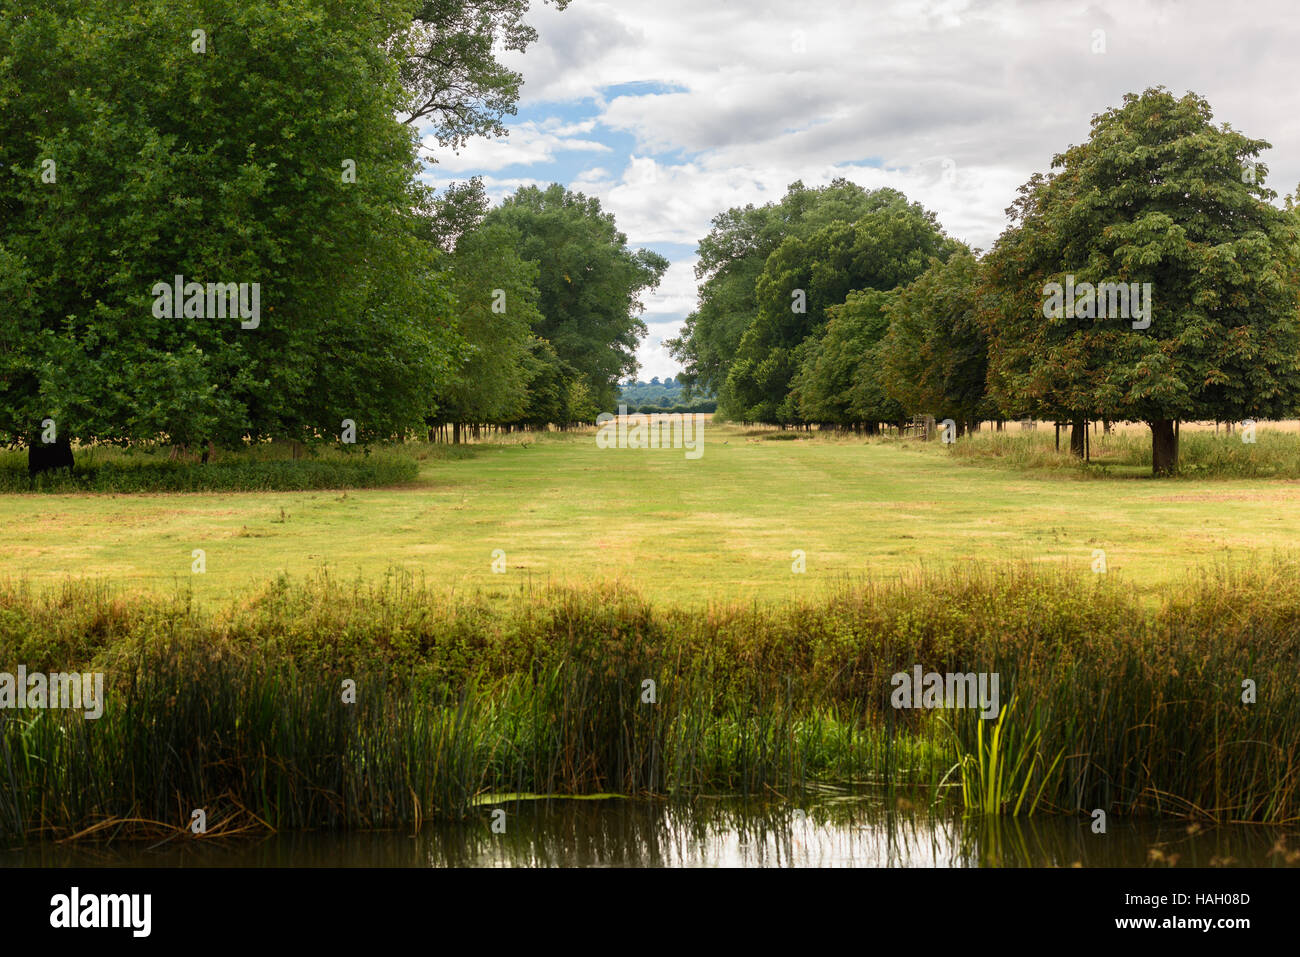 Alley of trees in the English Countryside on a summer's day walk - Stock Image